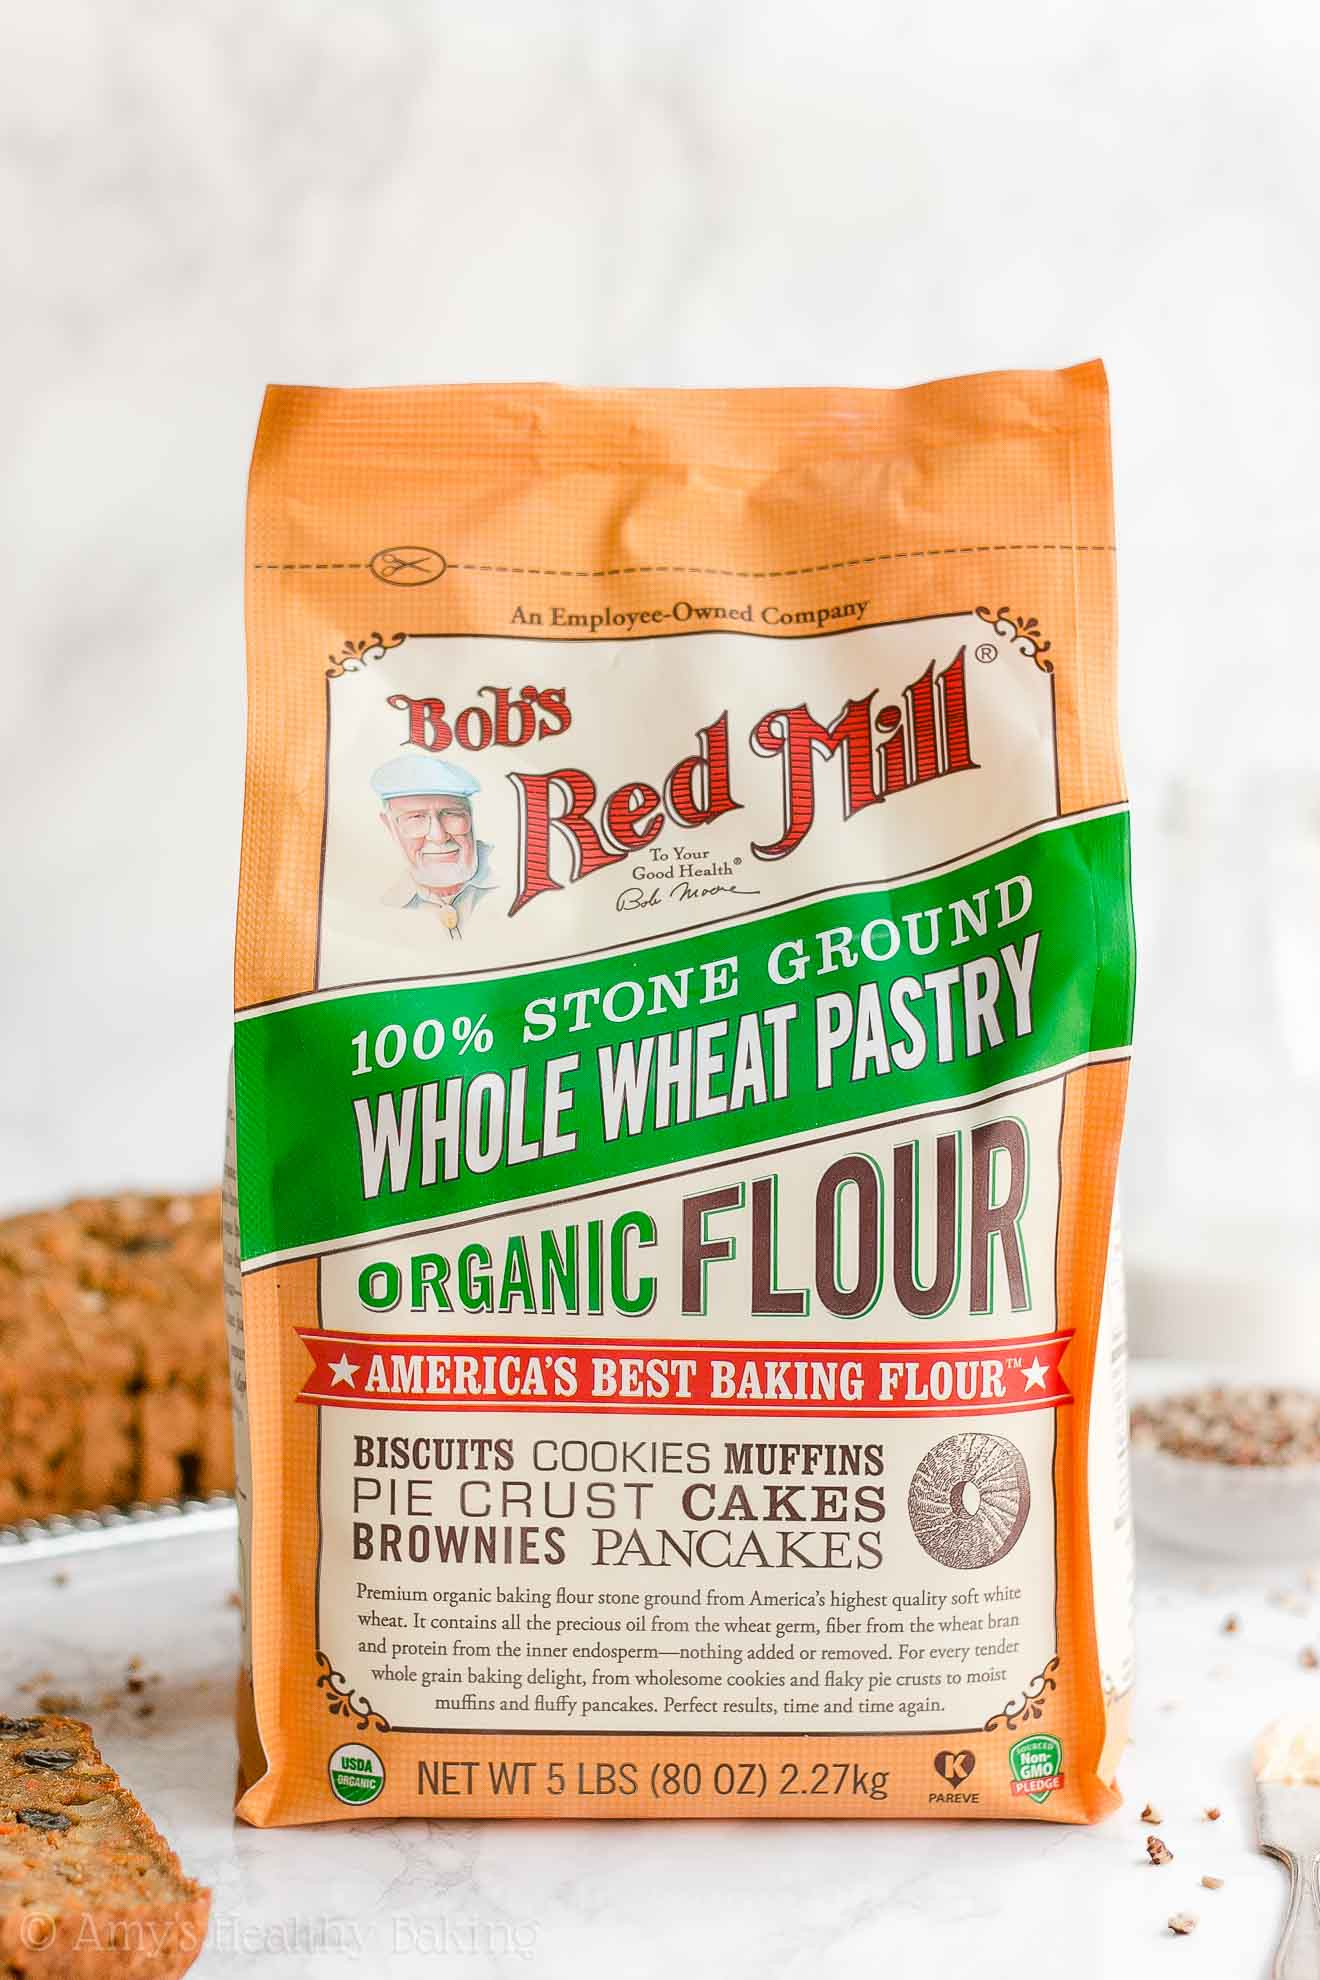 Bag of Bob's Red Mill Organic Whole Wheat Pastry Flour